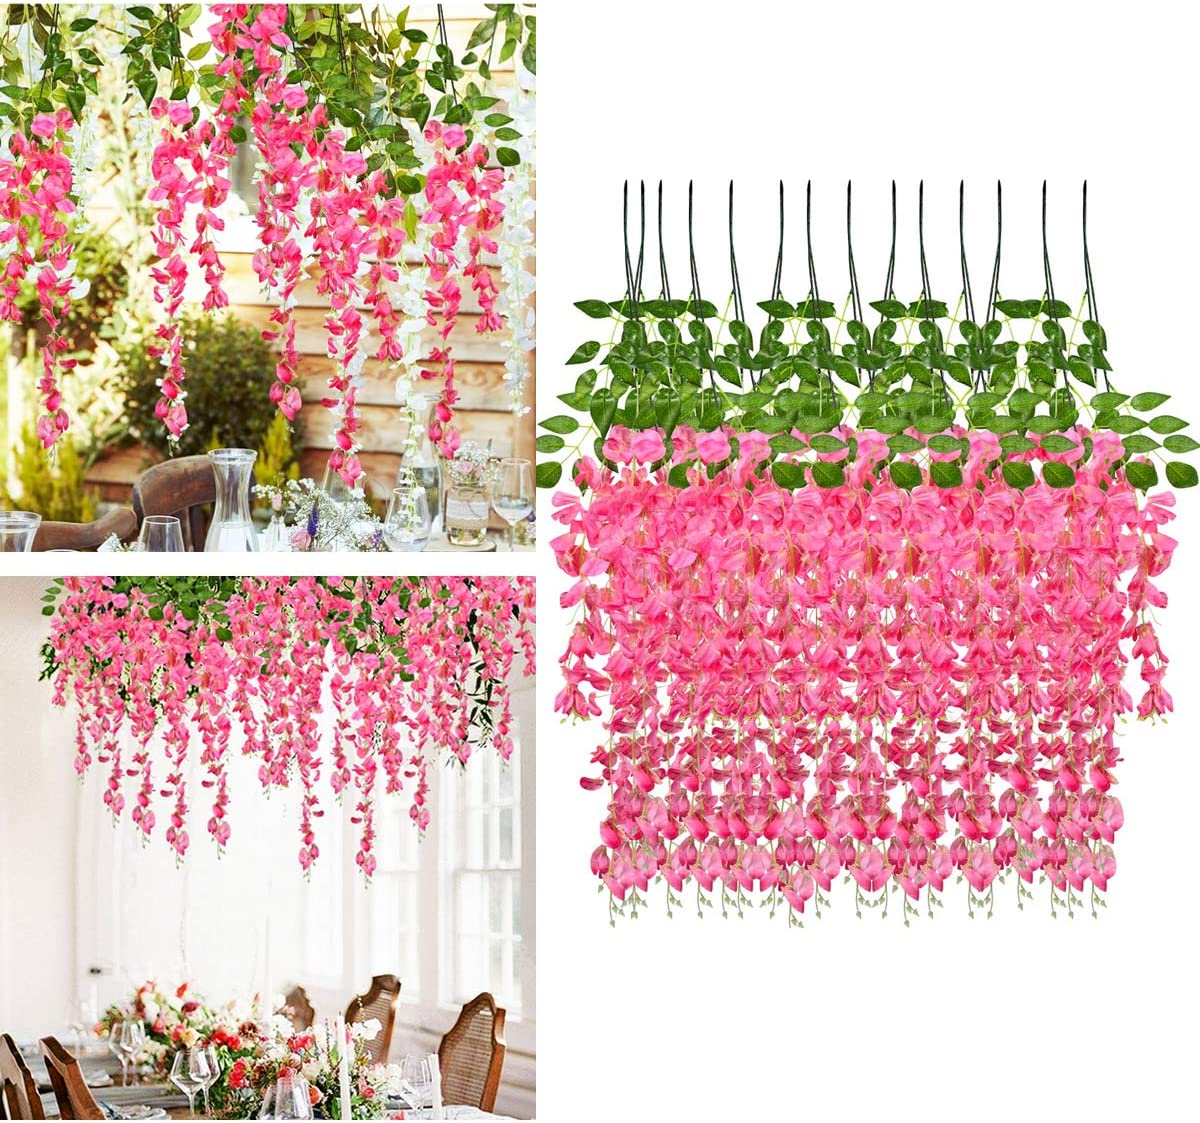 Artificial Wisteria Vine Ratta 3.25 Feet Hanging Garland Silk Fake Flowers String for Wedding Party12 Pack